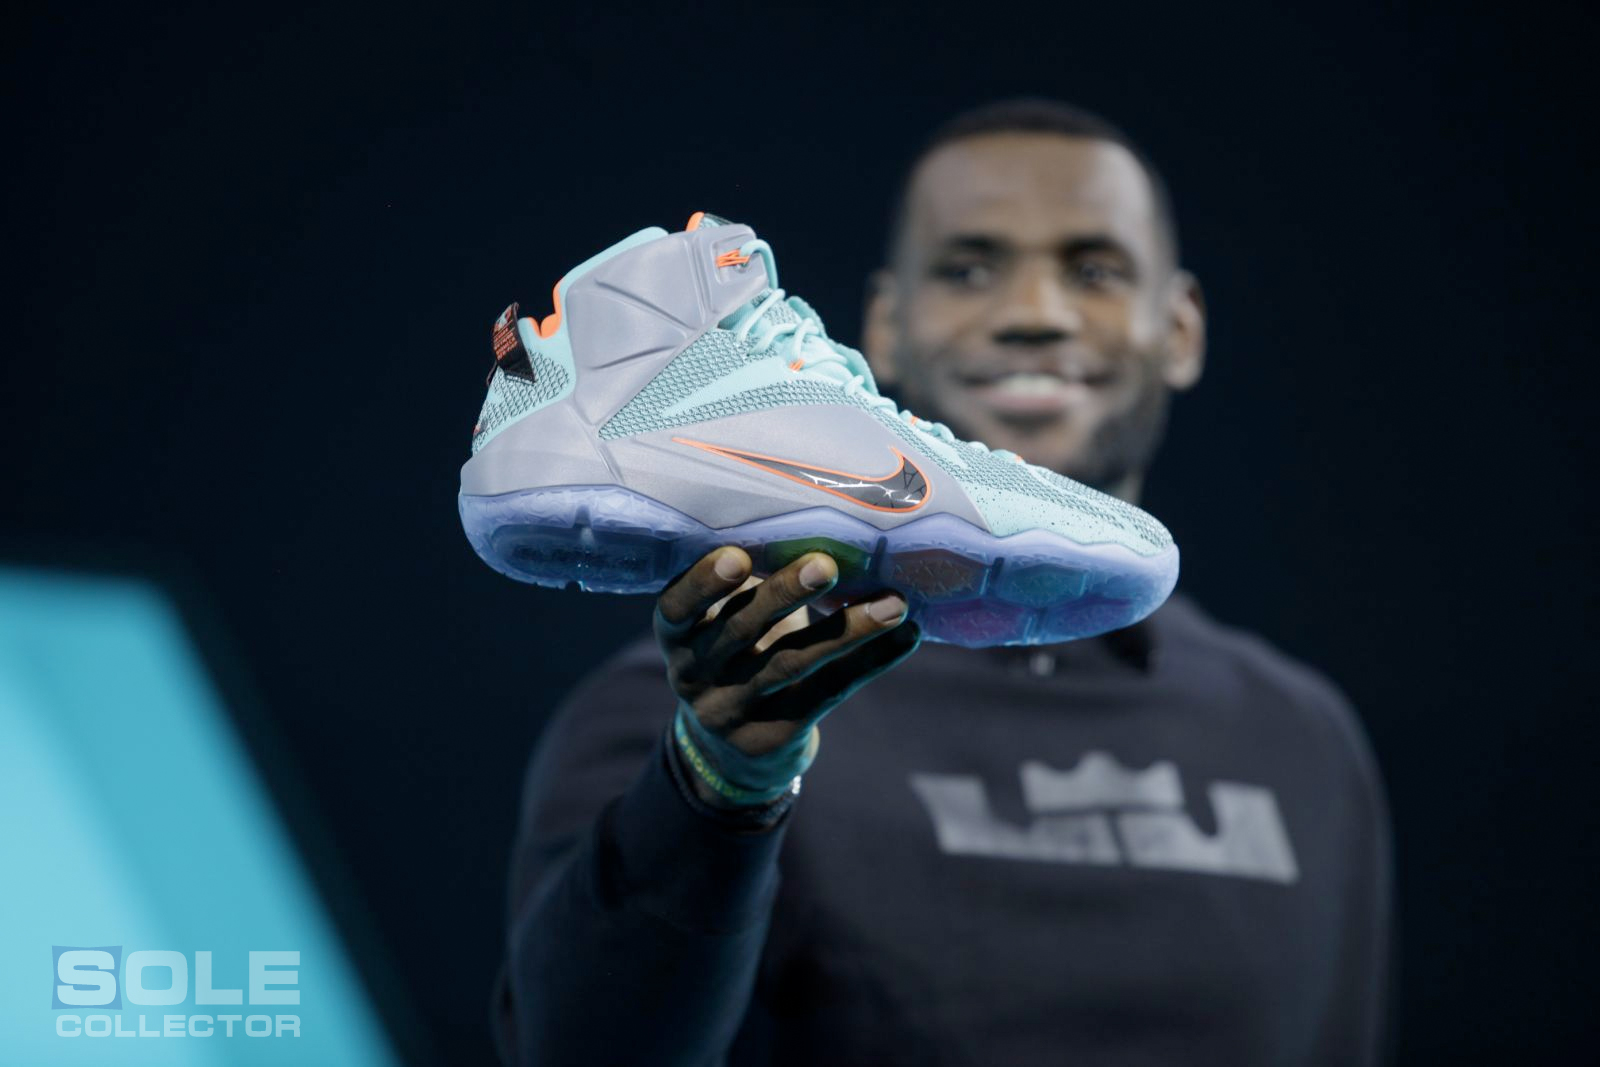 LeBron James Talks Retroing His Sneakers and Lessons From Barely Wearing  His Last Signature Shoes On Court